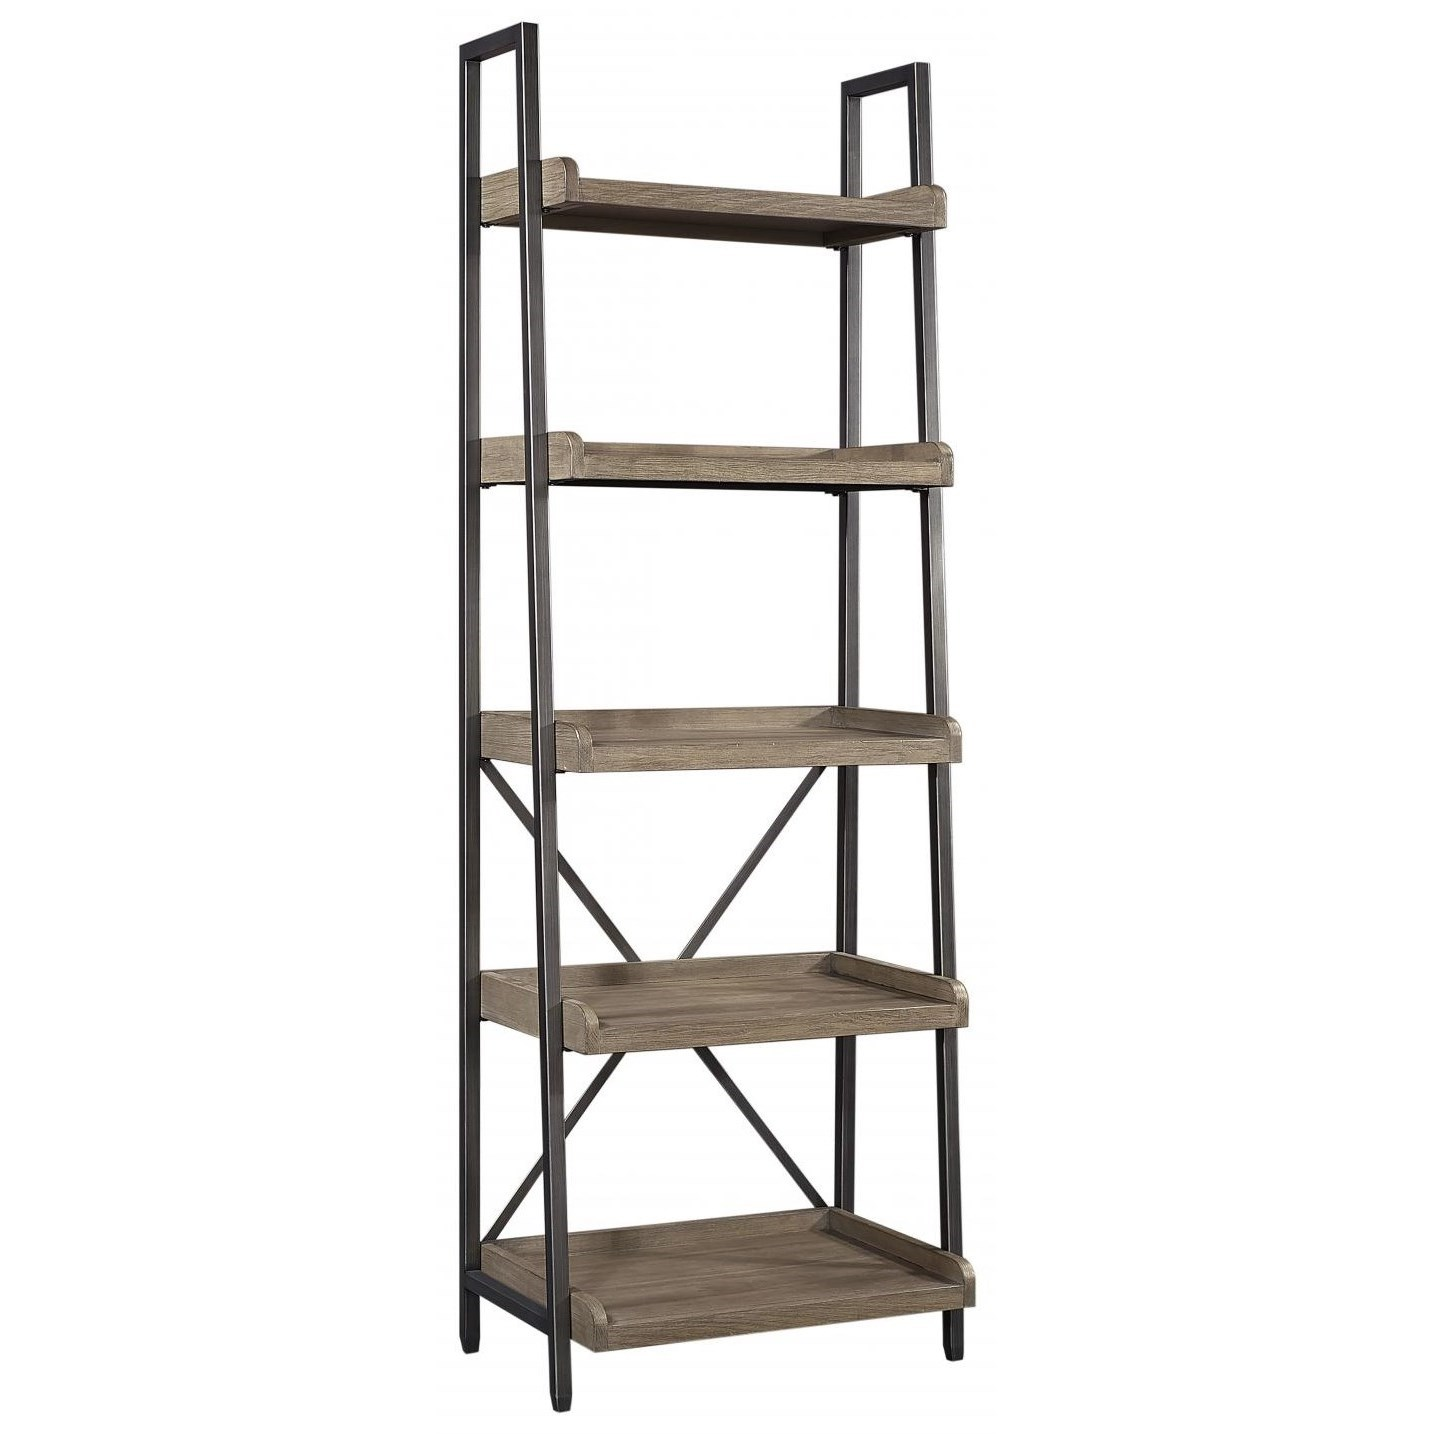 Trellis Bookcase by Aspenhome at Walker's Furniture